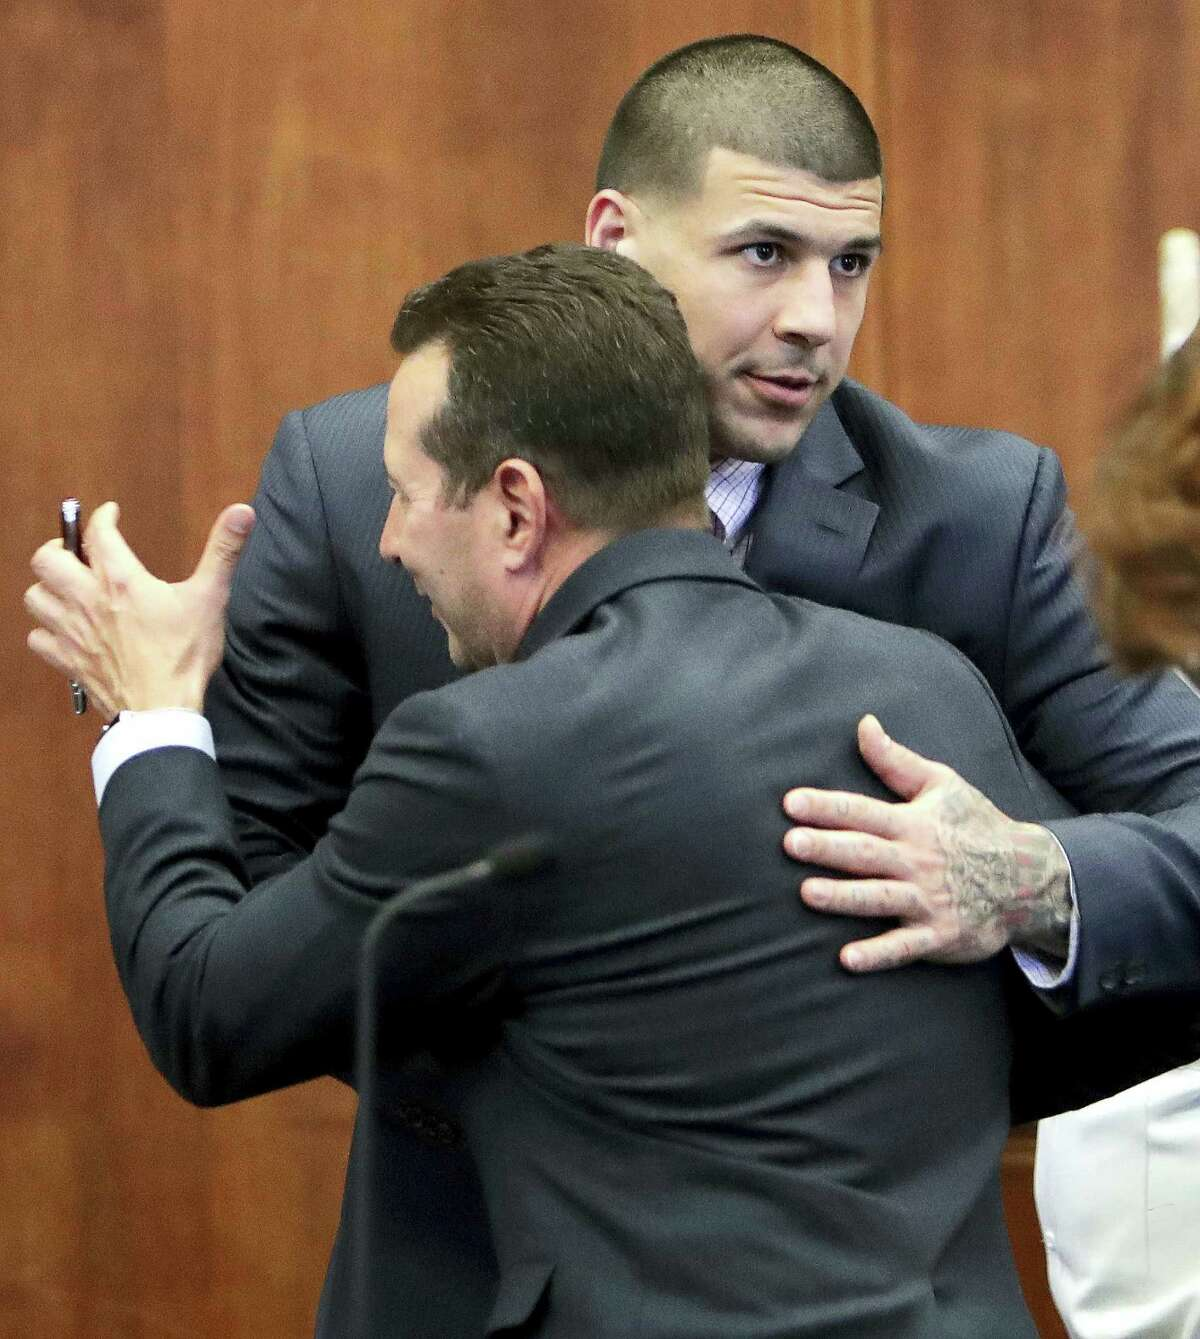 Former New England Patriots NFL football player Aaron Hernandez, left, hugs his attorney Jose Baez during a status conference in his upcoming double murder trial, Wednesday, Oct. 5, 2016, at Suffolk Superior Court in Boston. Hernandez, who has pleaded not guilty, is scheduled to stand trial in February in the 2012 killings of two men he encountered in a Boston nightclub. He is already serving a life sentence in the 2013 killing of Odin Lloyd, a semi-professional football player.